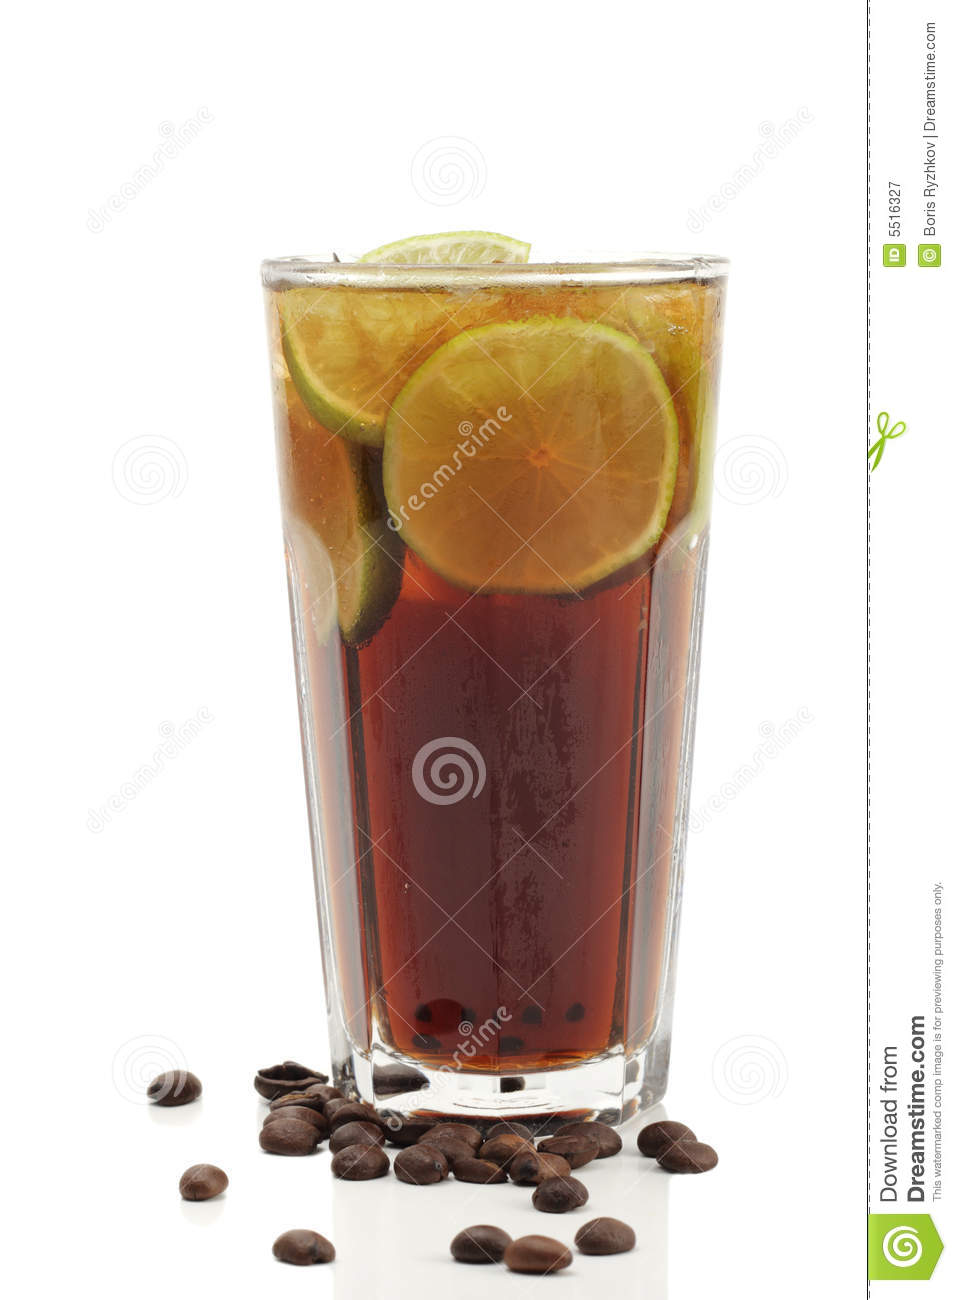 Cocktail long island iced tea royalty free stock for Cocktail long island